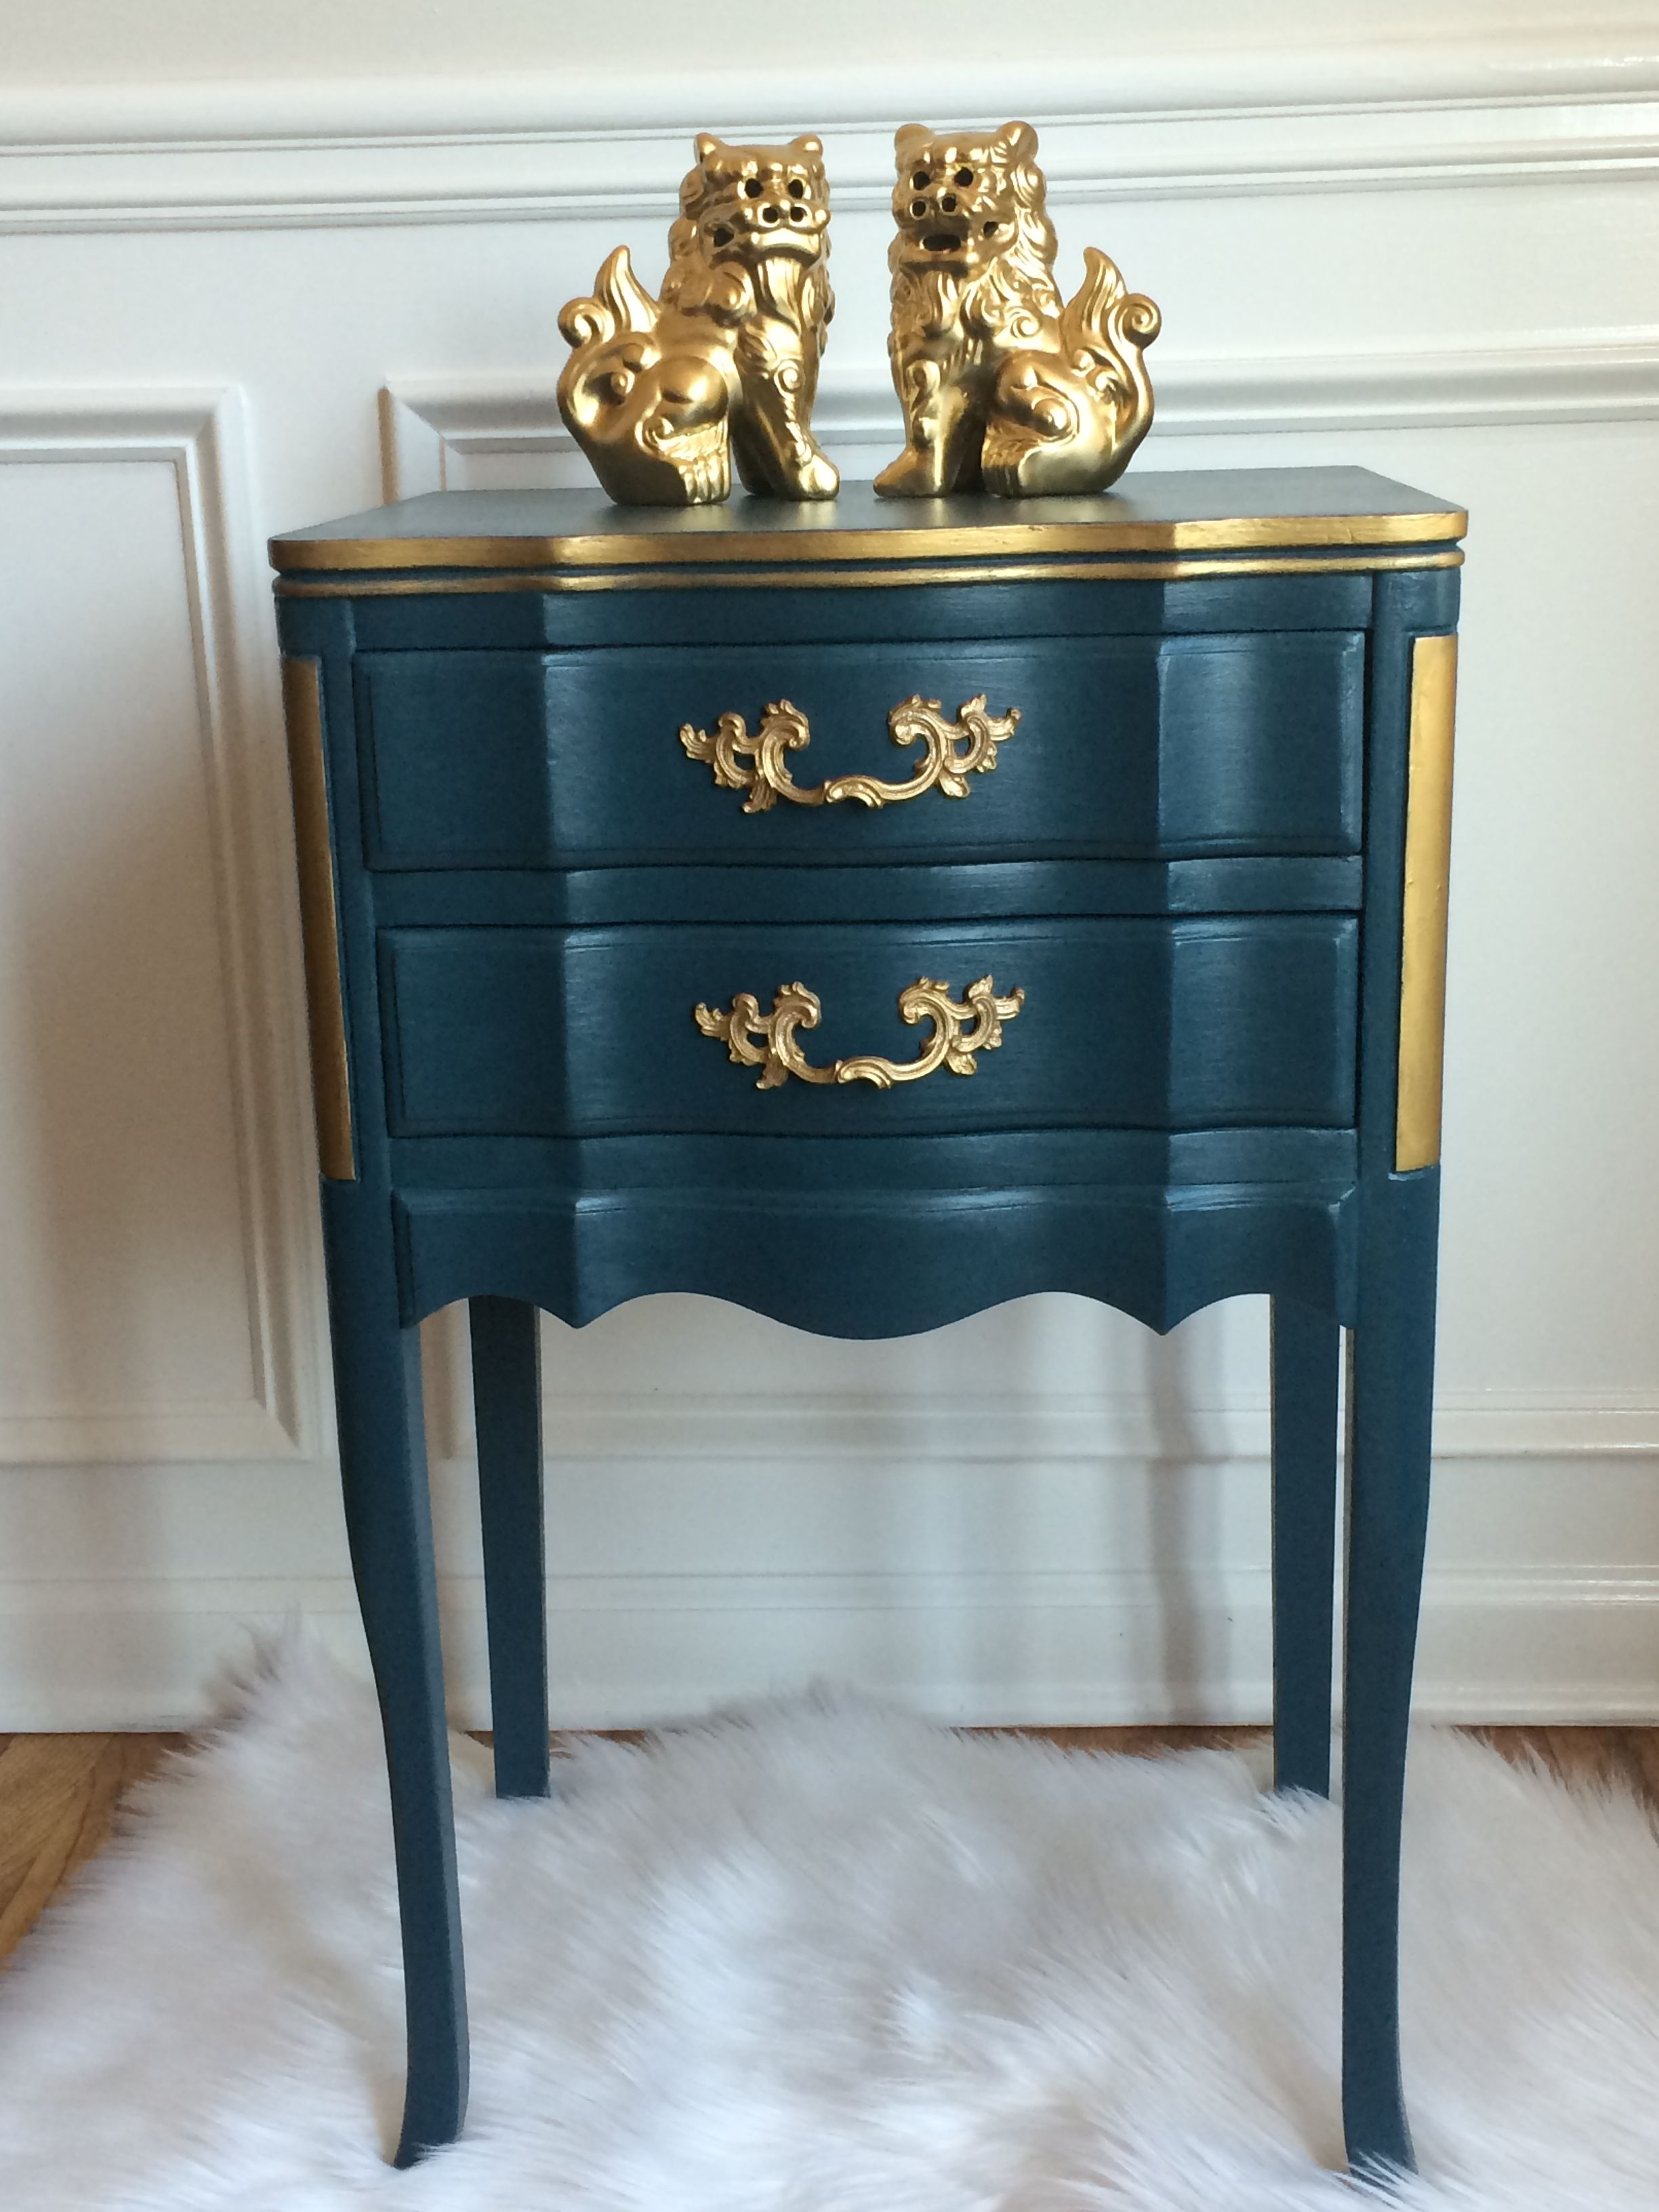 french provincial end table diy chalk type paint bohemian blue painted tables chinese trunk coffee narrow parsons console leons bunk beds replacement glass for patio bar iron